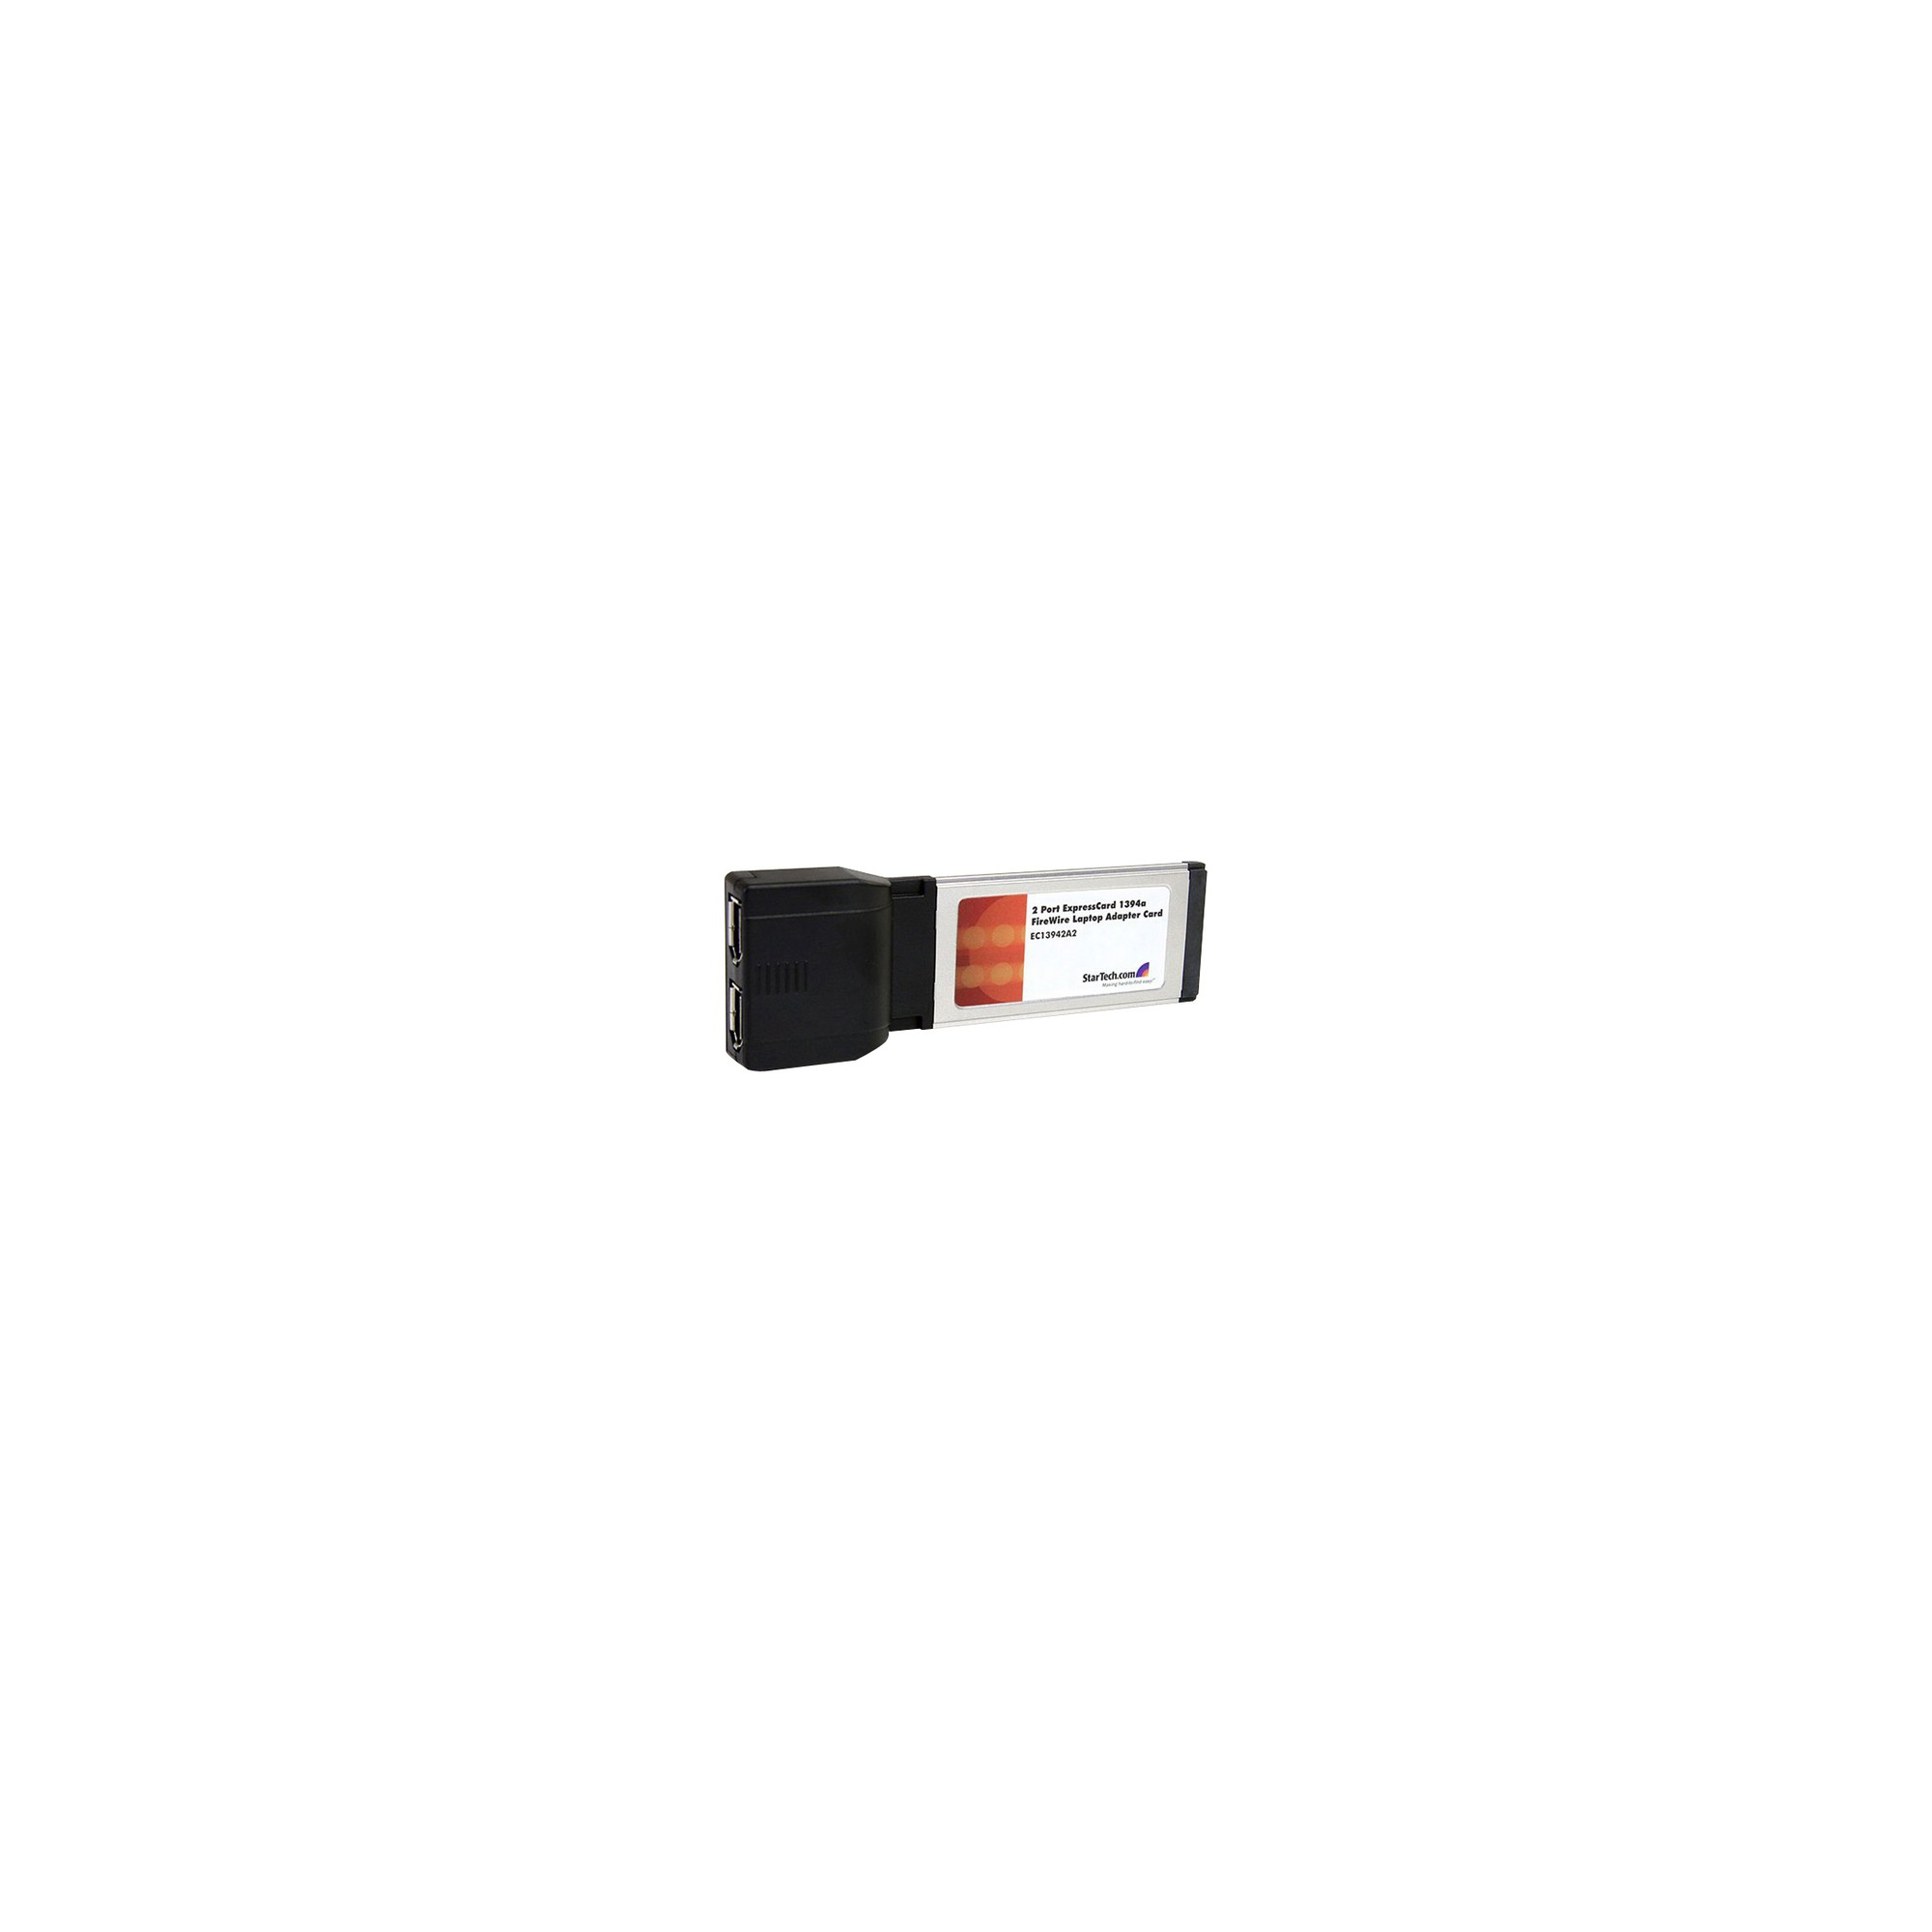 EXPRESSCARD 1394A DRIVERS FOR WINDOWS 8